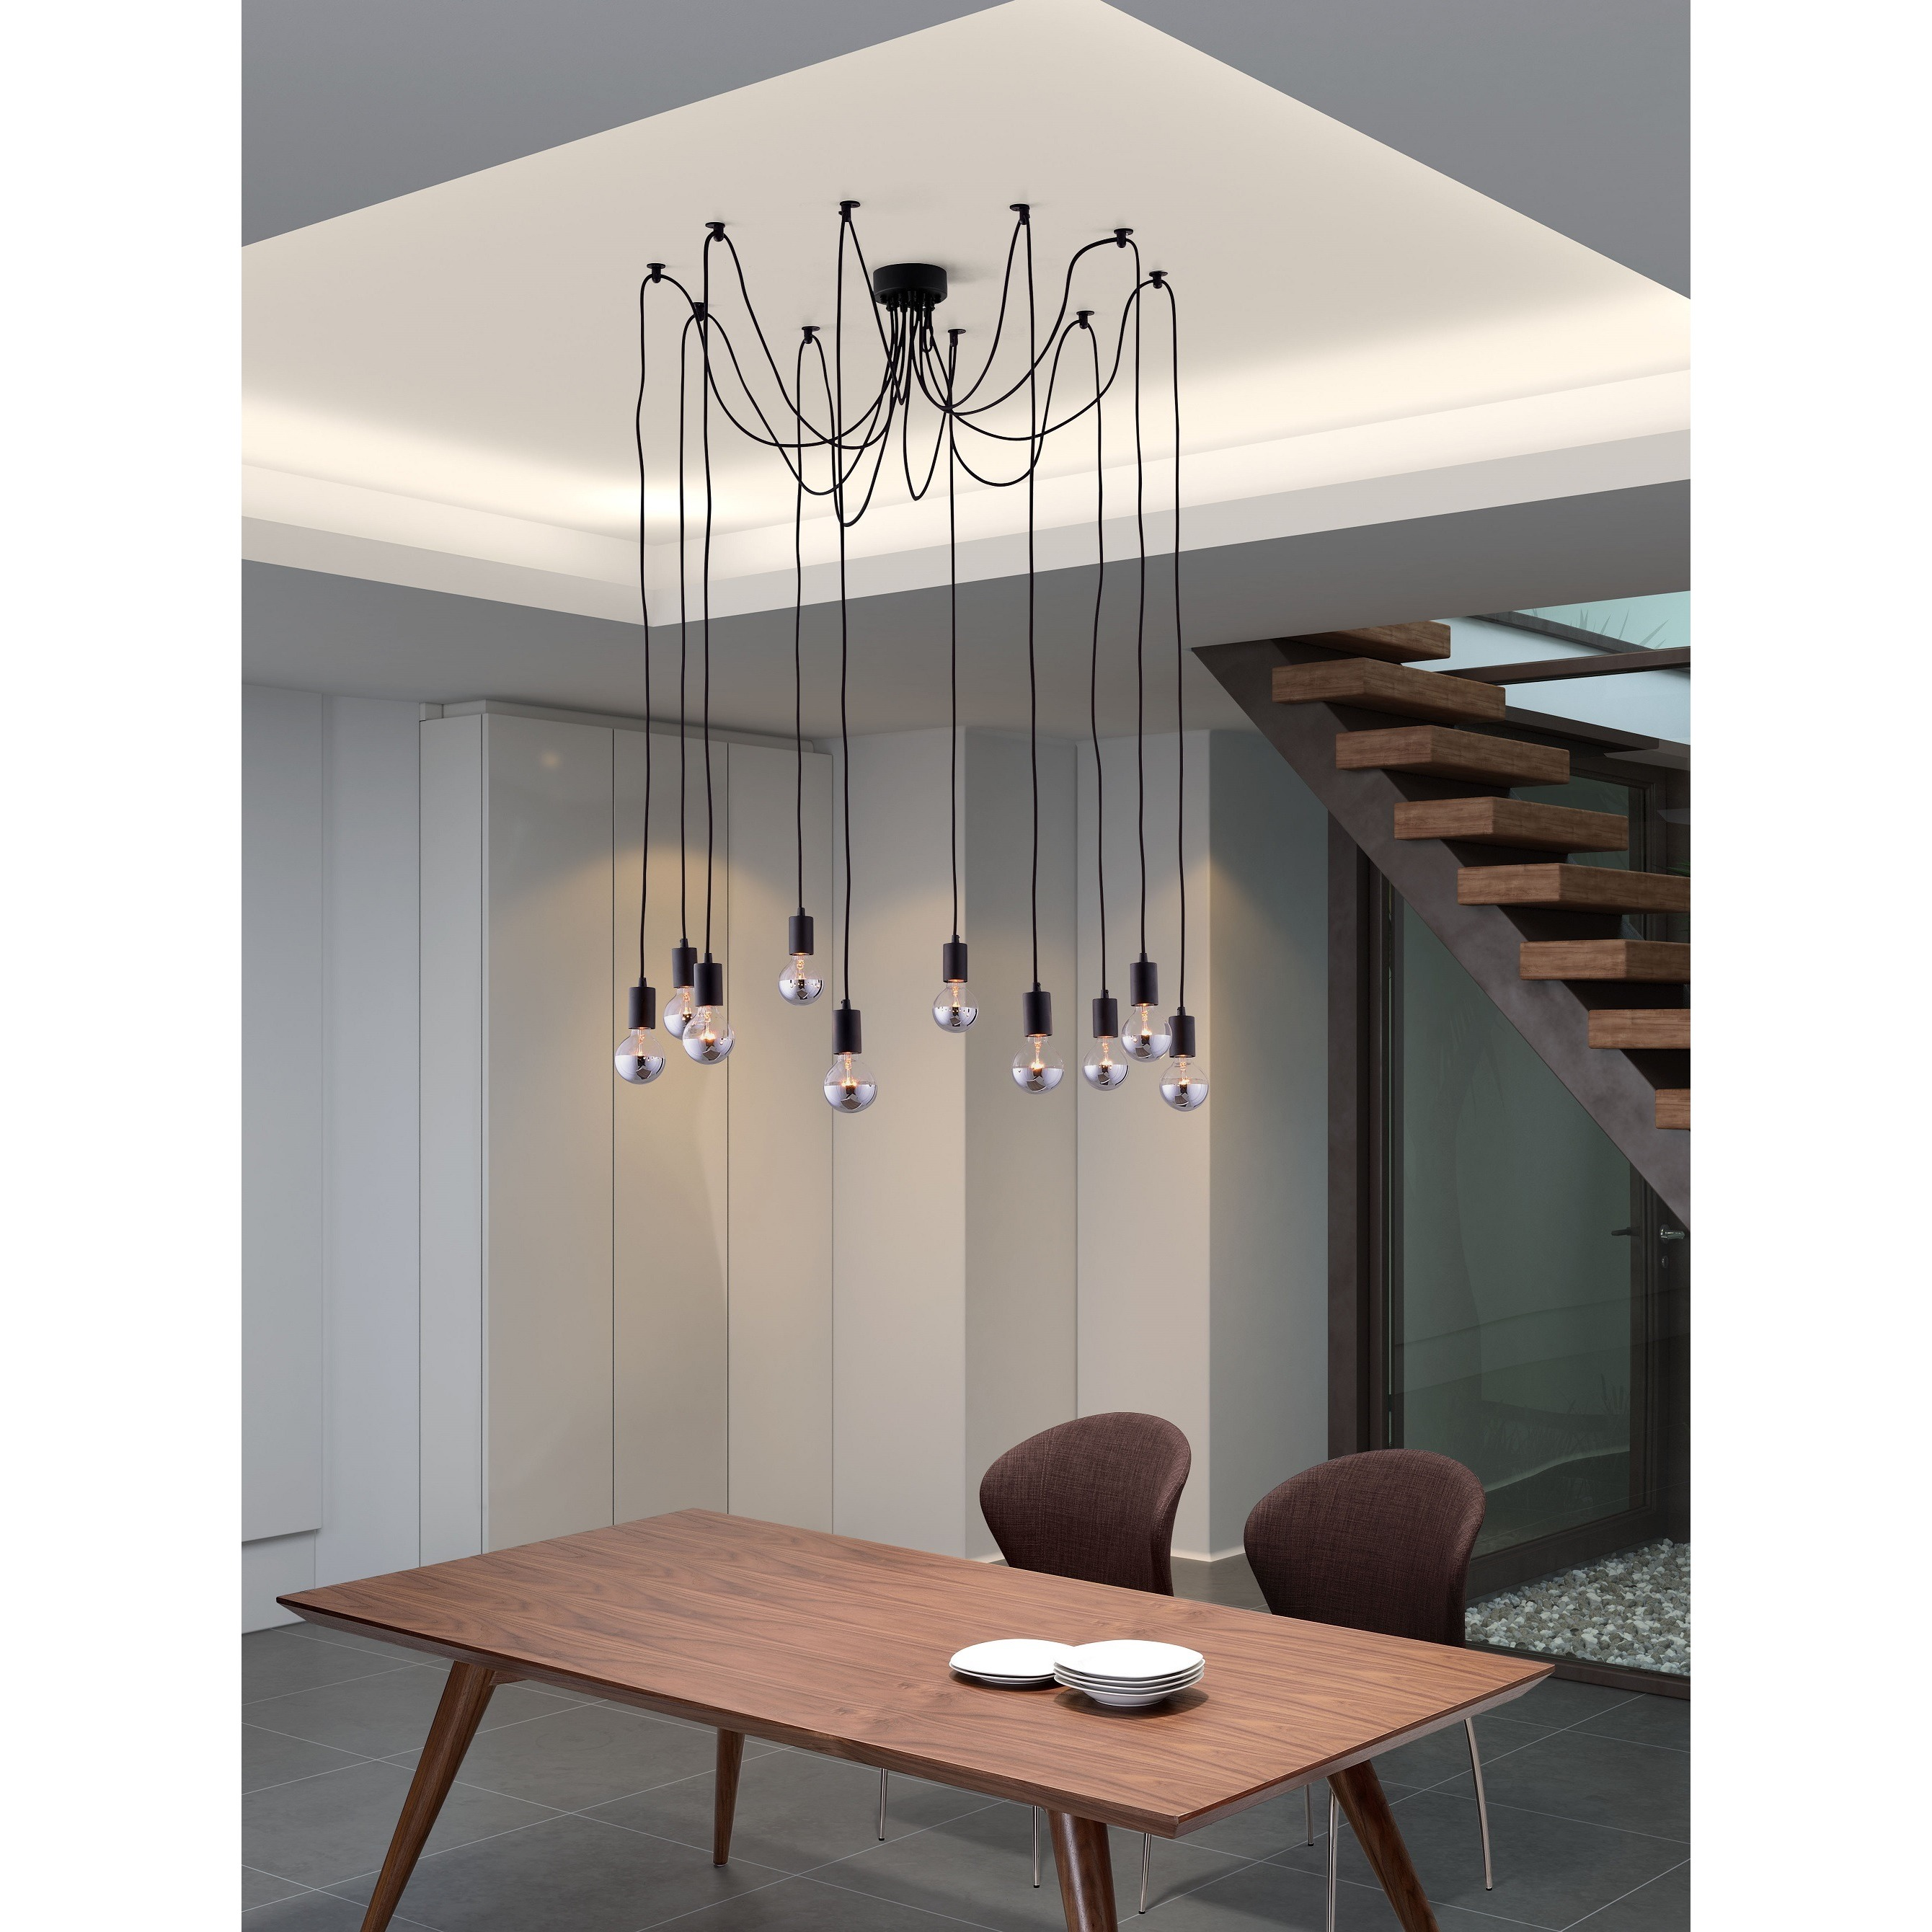 of stamen s the light pendant fused modern two personality with pin produce pieces ceiling encalmo to glass lighting